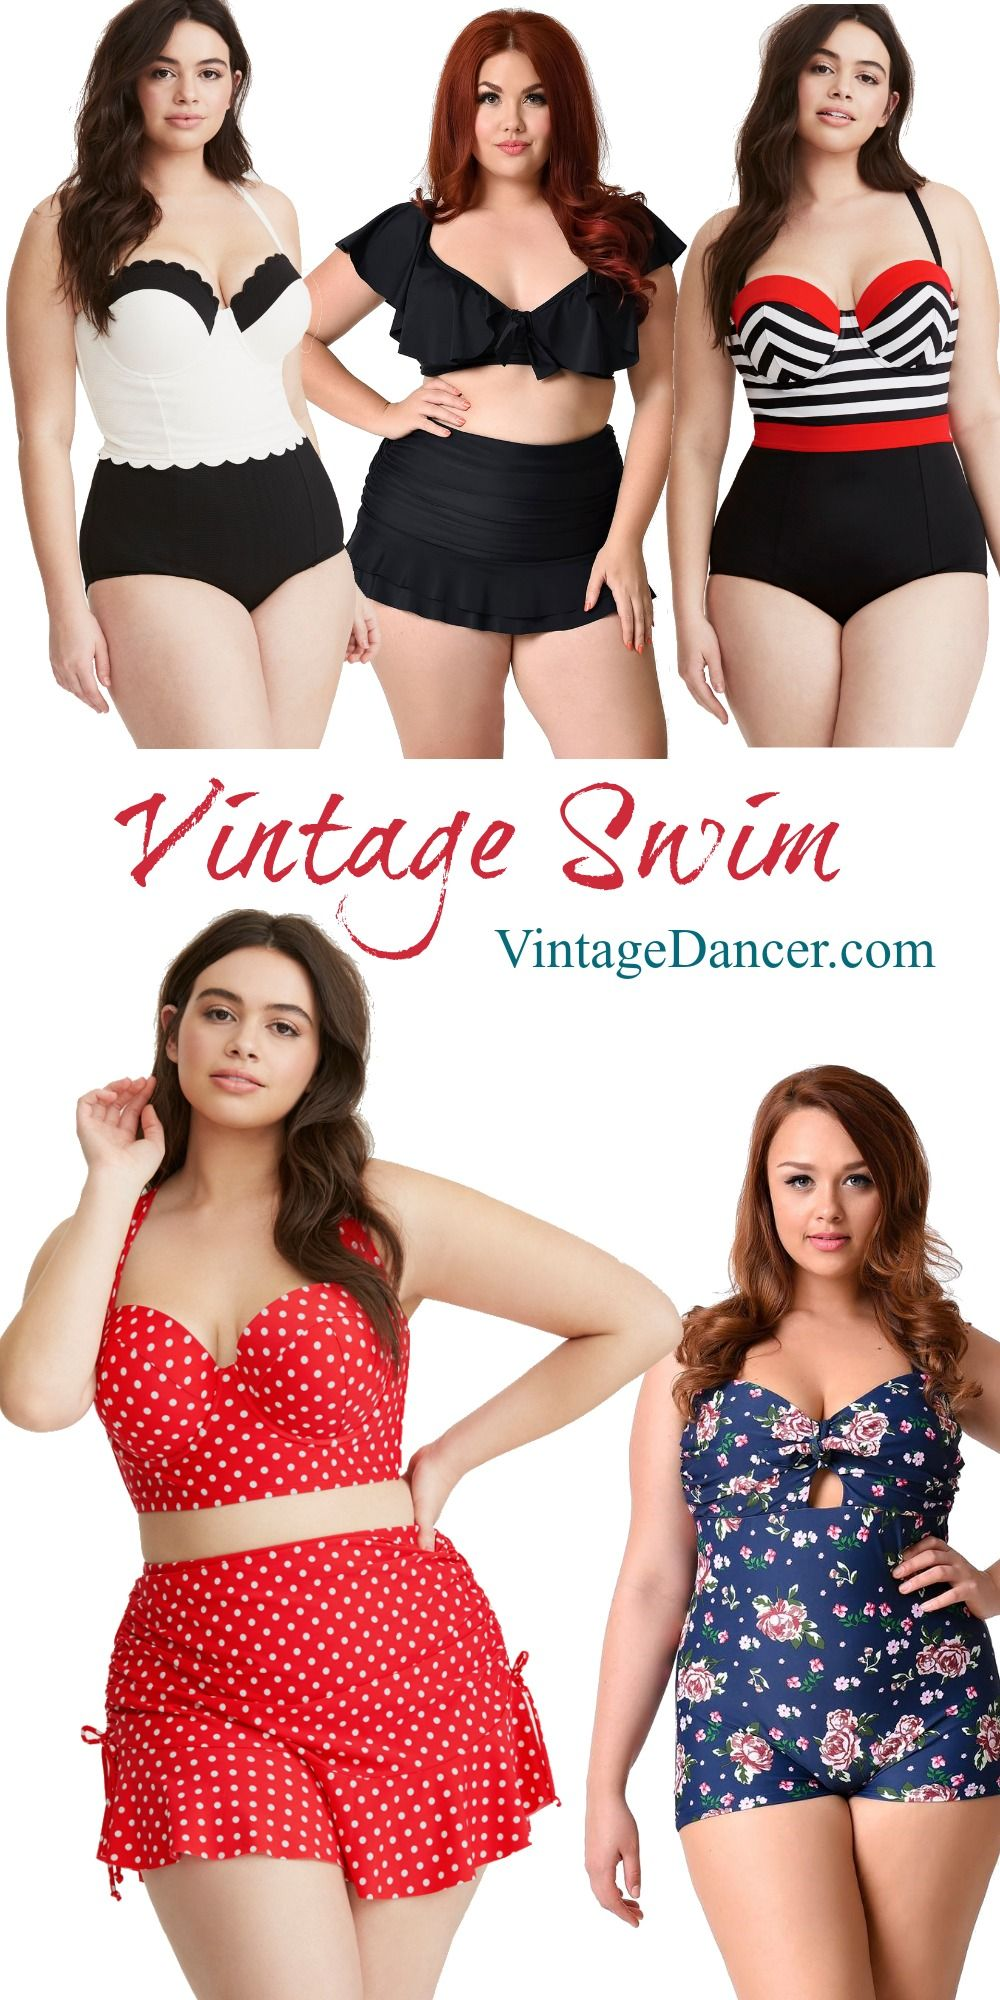 0dd84f74afb Vintage swimsuits in plus sizes. one and two piece retro inspired pinup  worthy bathing suits for epic summer pool parties.